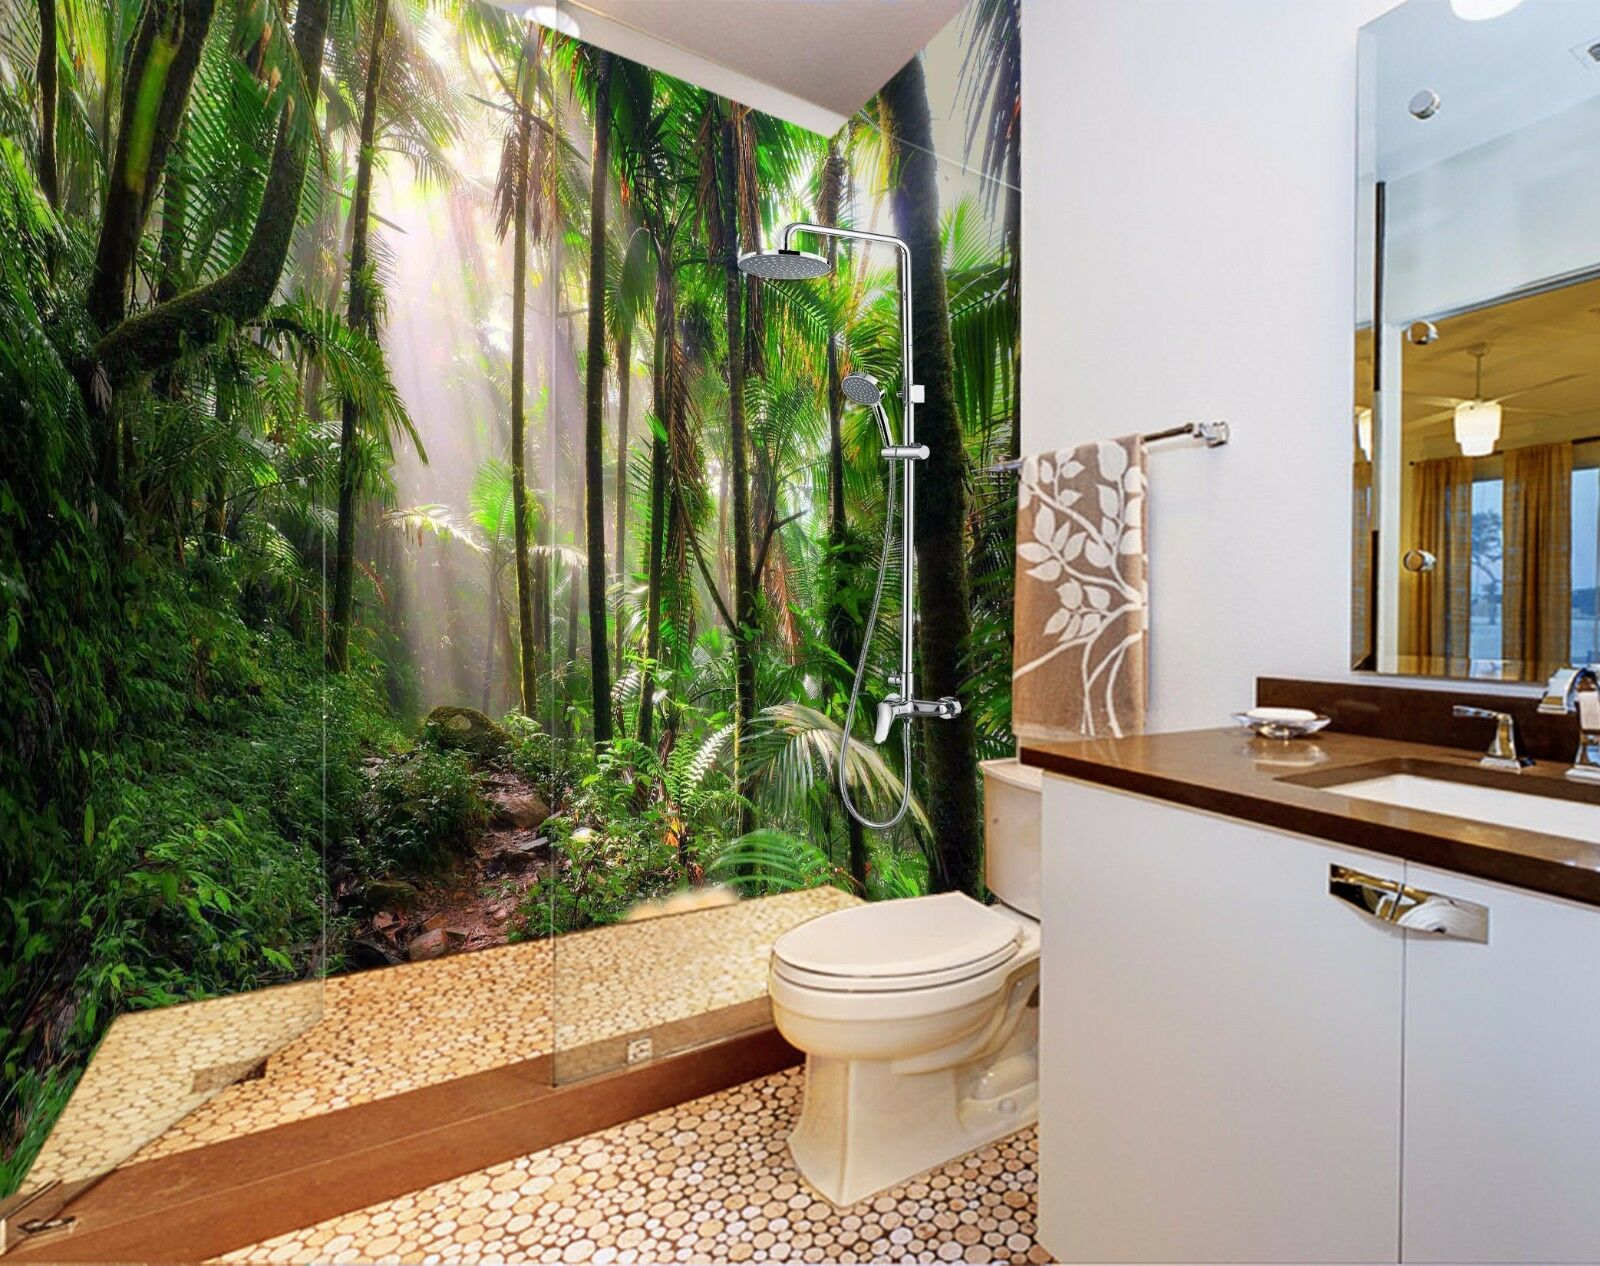 3D Jungle Tree 4268 WallPaper Bathroom Print Decal Wall Deco AJ WALLPAPER AU